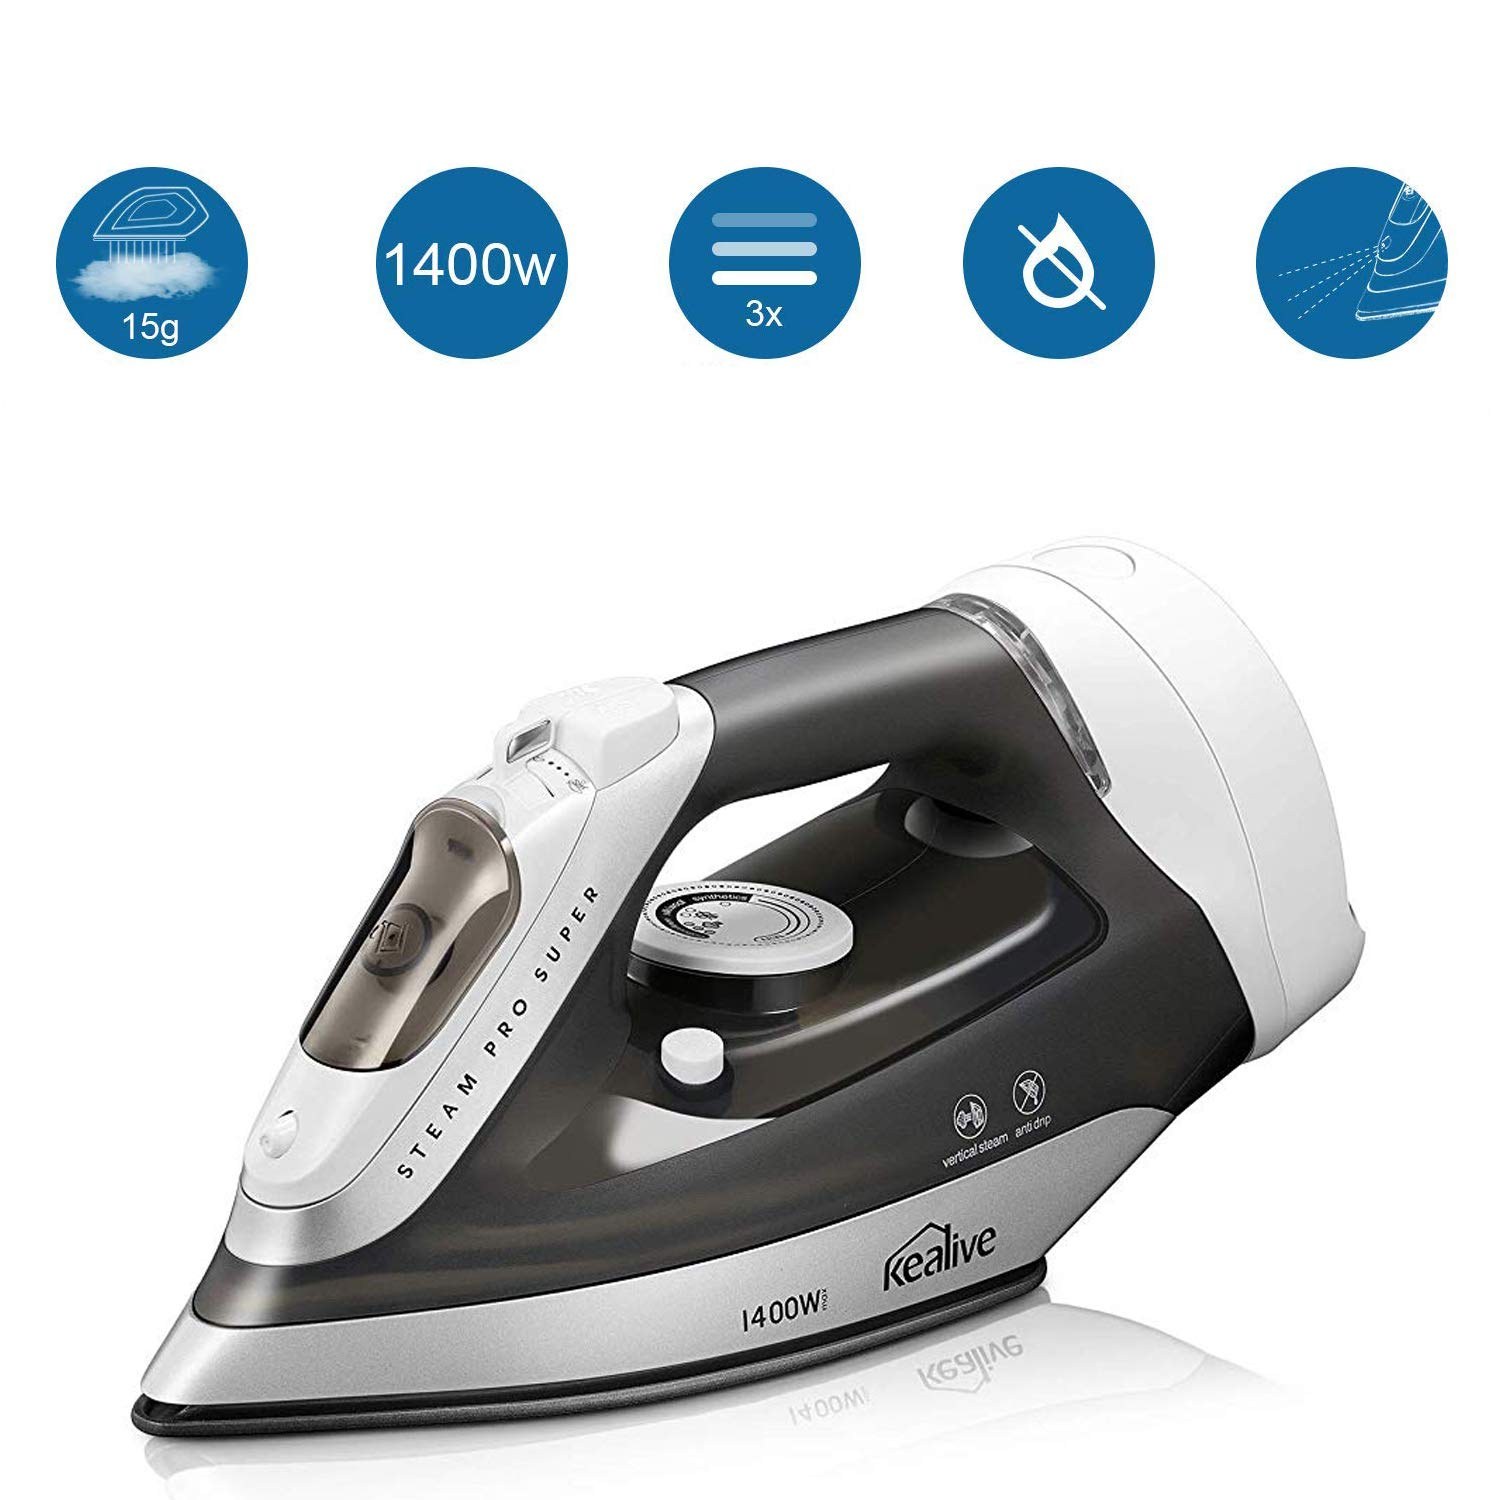 kealive Steam Iron, Omnipotent Professional Large Anti-Drip Nonstick Iron, Vertical Steam Burst Clothes Iron, Anti-Calcium System, Self-Clean, Retractable Cord, Steam Control by kealive